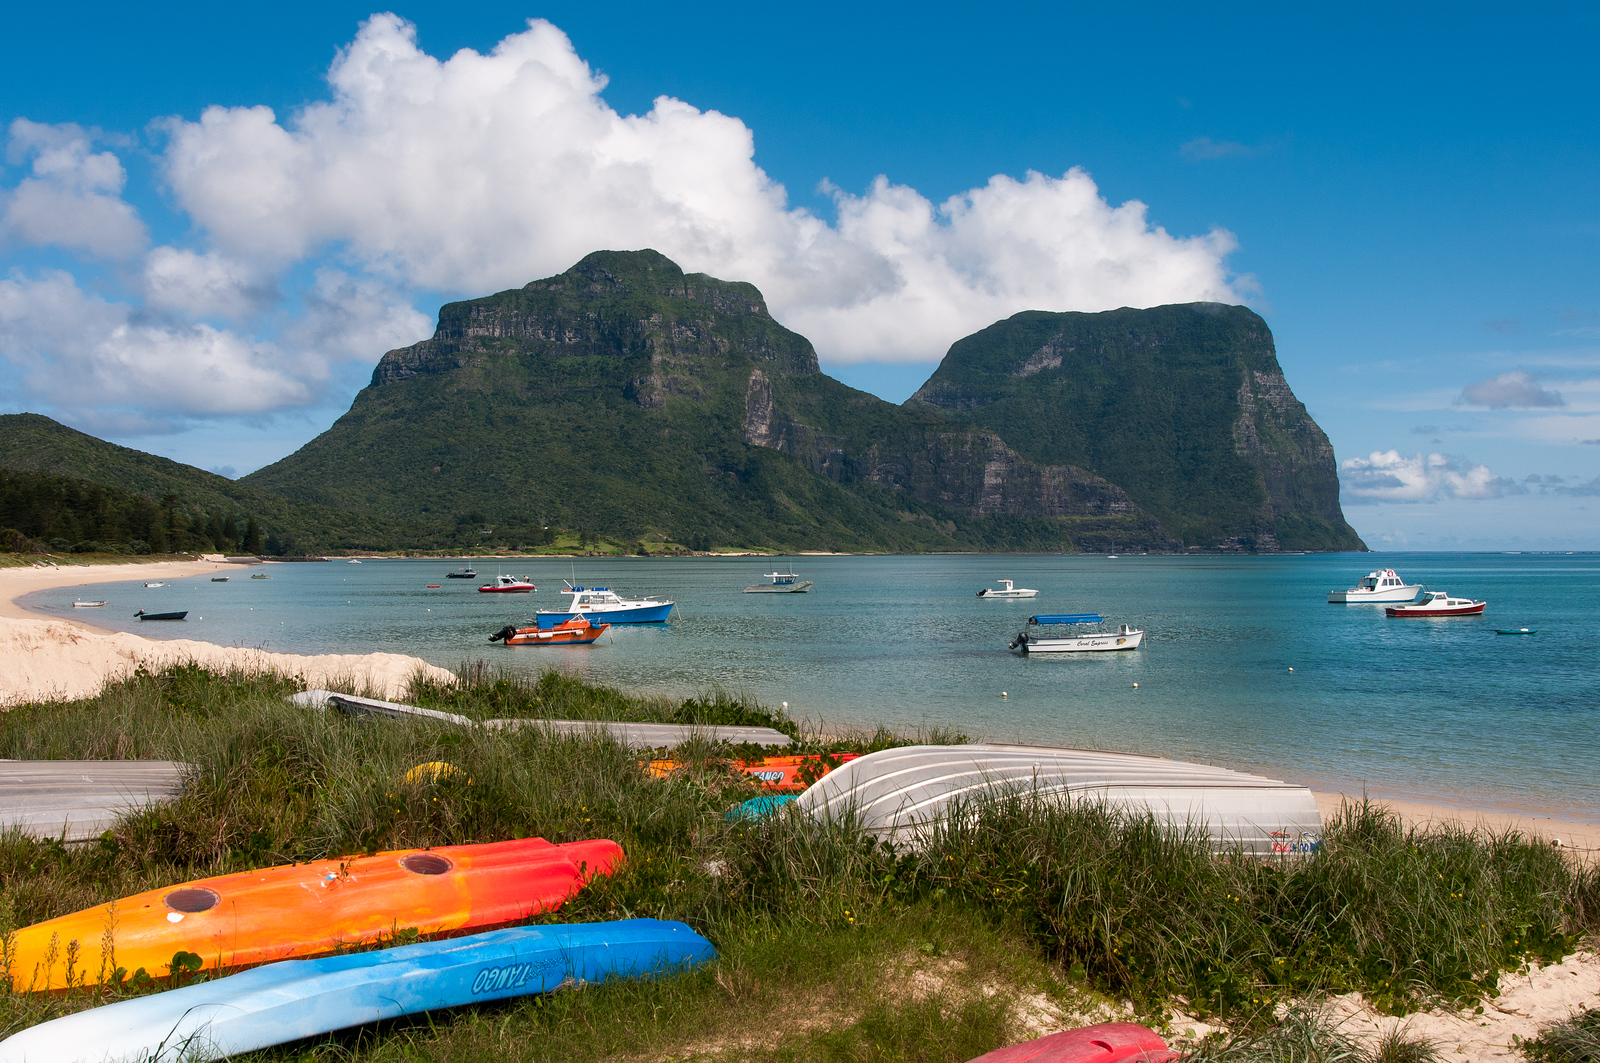 Boats at North Bay, Lord Howe Island